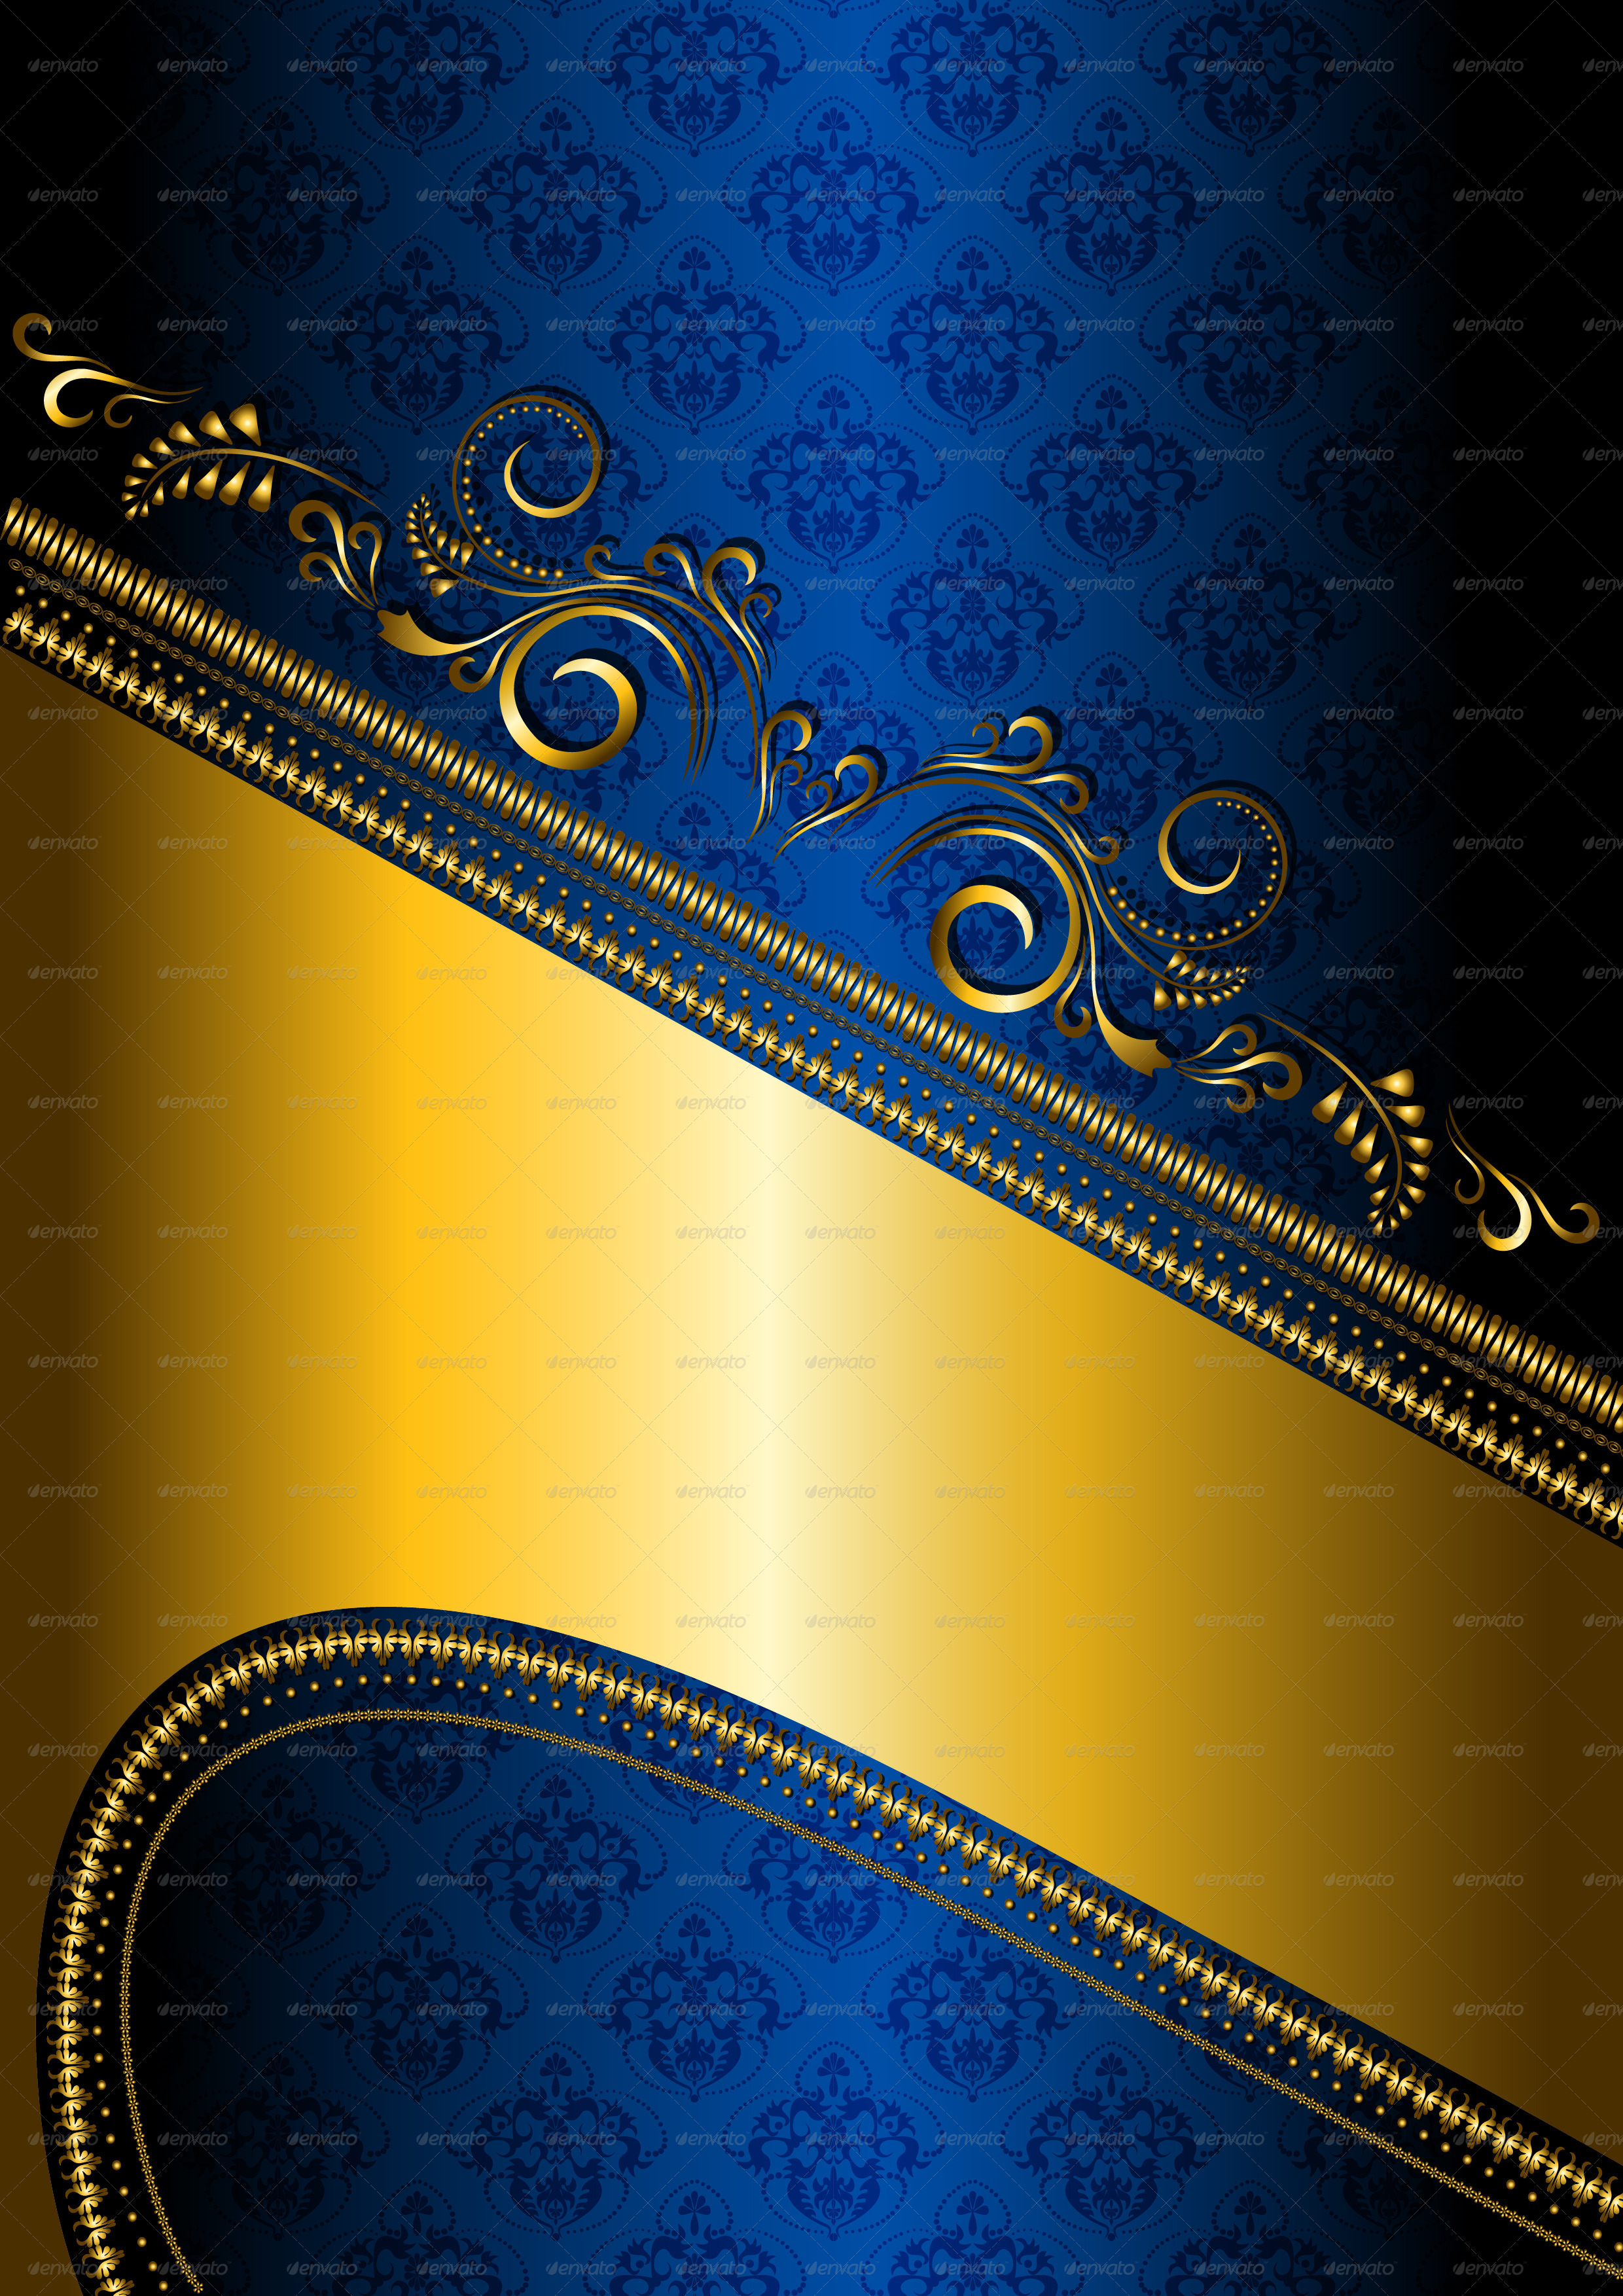 Blue and gold background wallpaper wallpapersafari for Dark blue and gold wallpaper